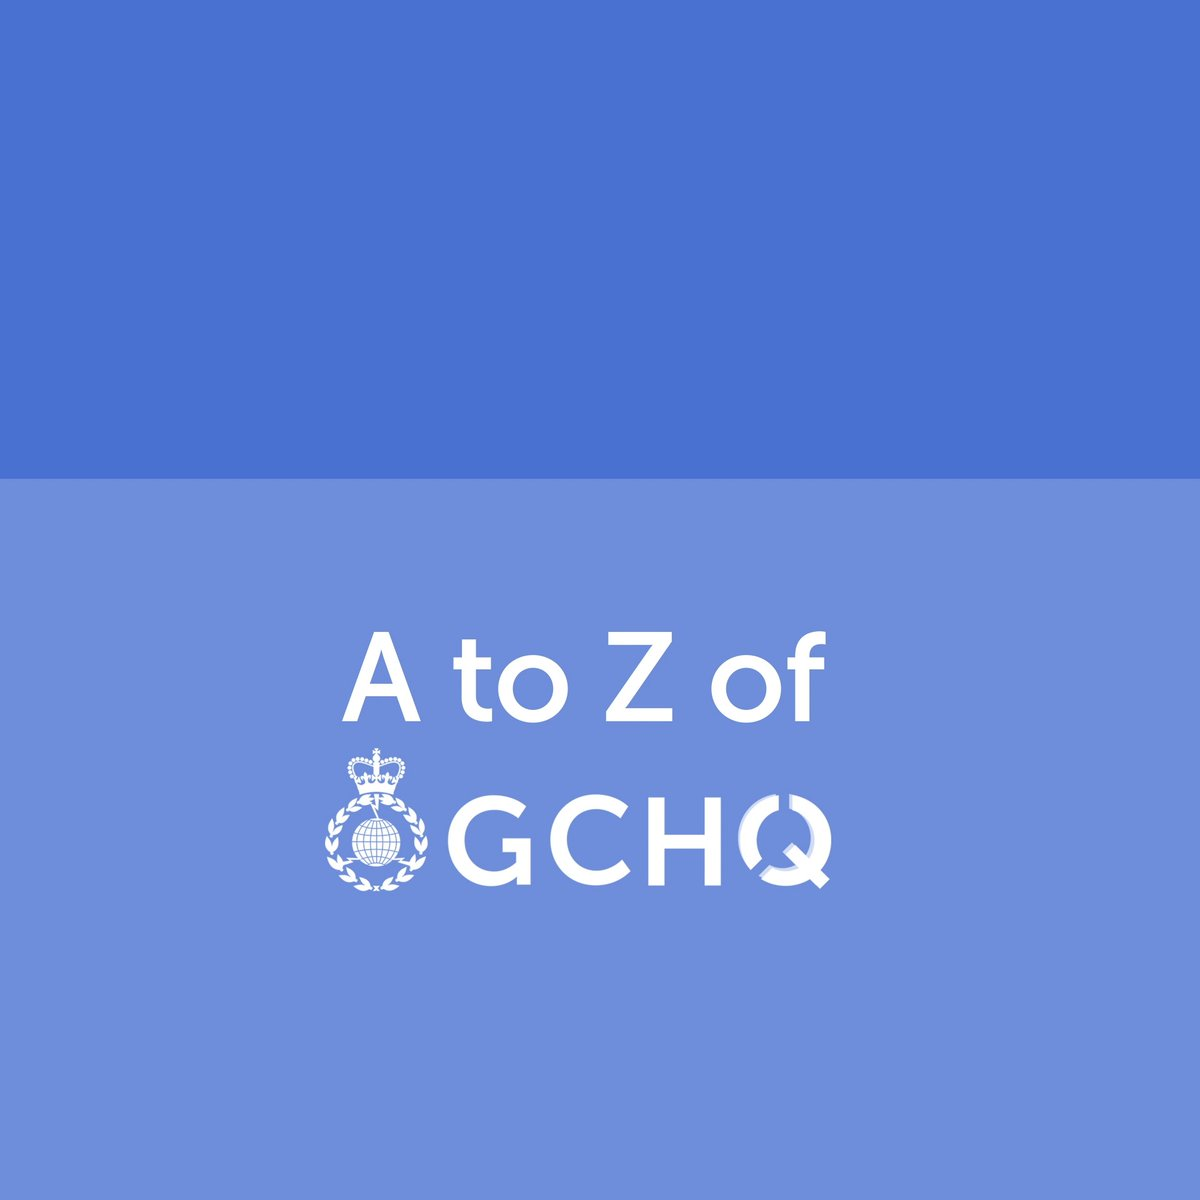 James talks about how we support our neurodiverse colleagues in many ways, including: - Putting in place reasonable adjustments - Recognition of both great work and challenges you might face - Training for all staff, including managers gchq.gov.uk/information/da… #AtoZofGCHQ